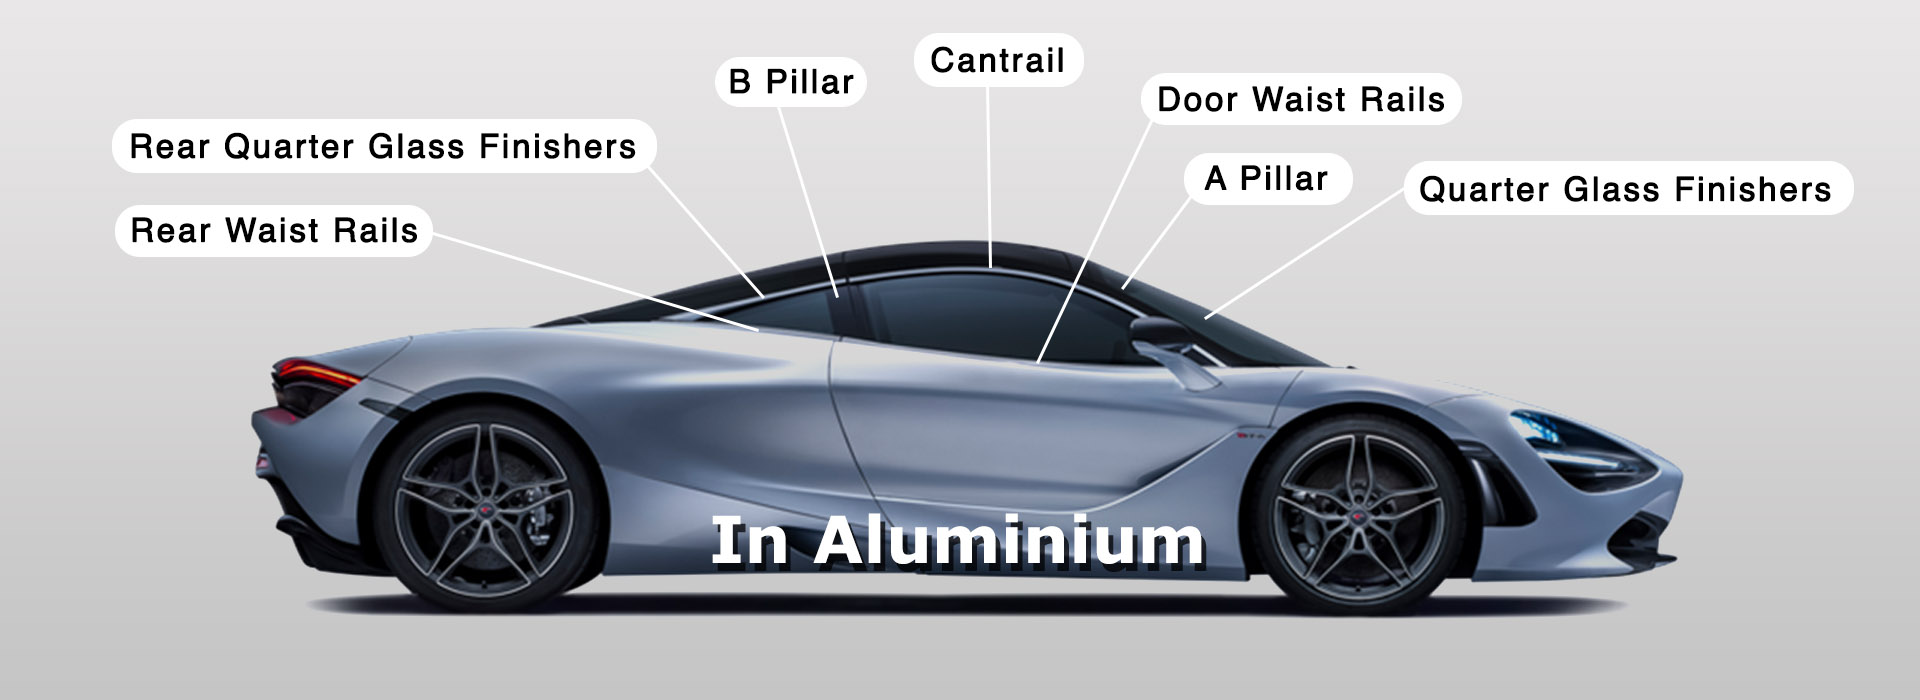 Products-Aluminium-2.jpg